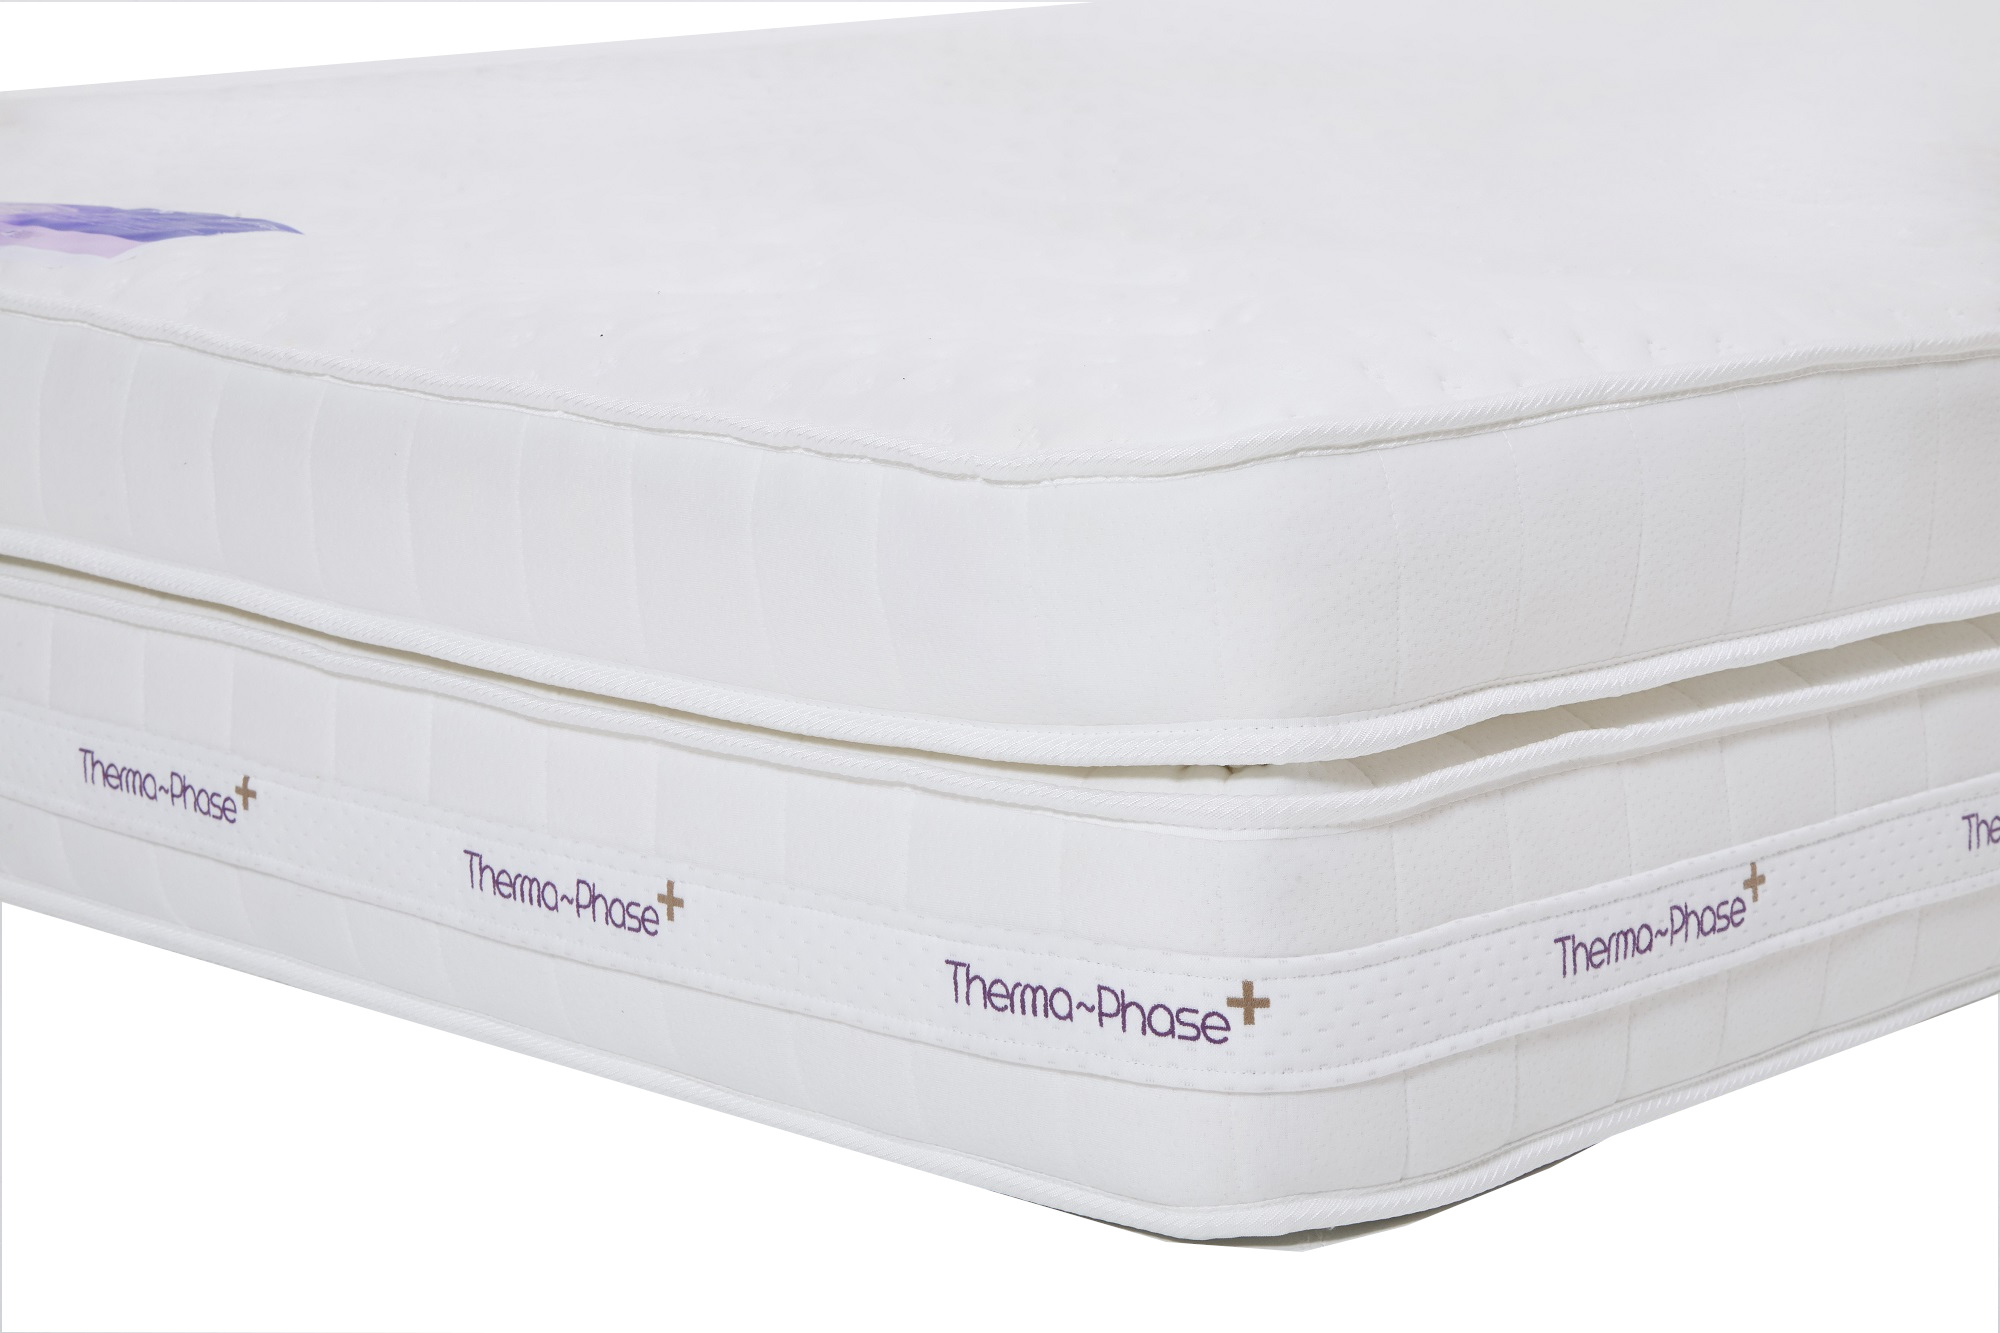 Caseys Thermaphase + 2500 Mattress